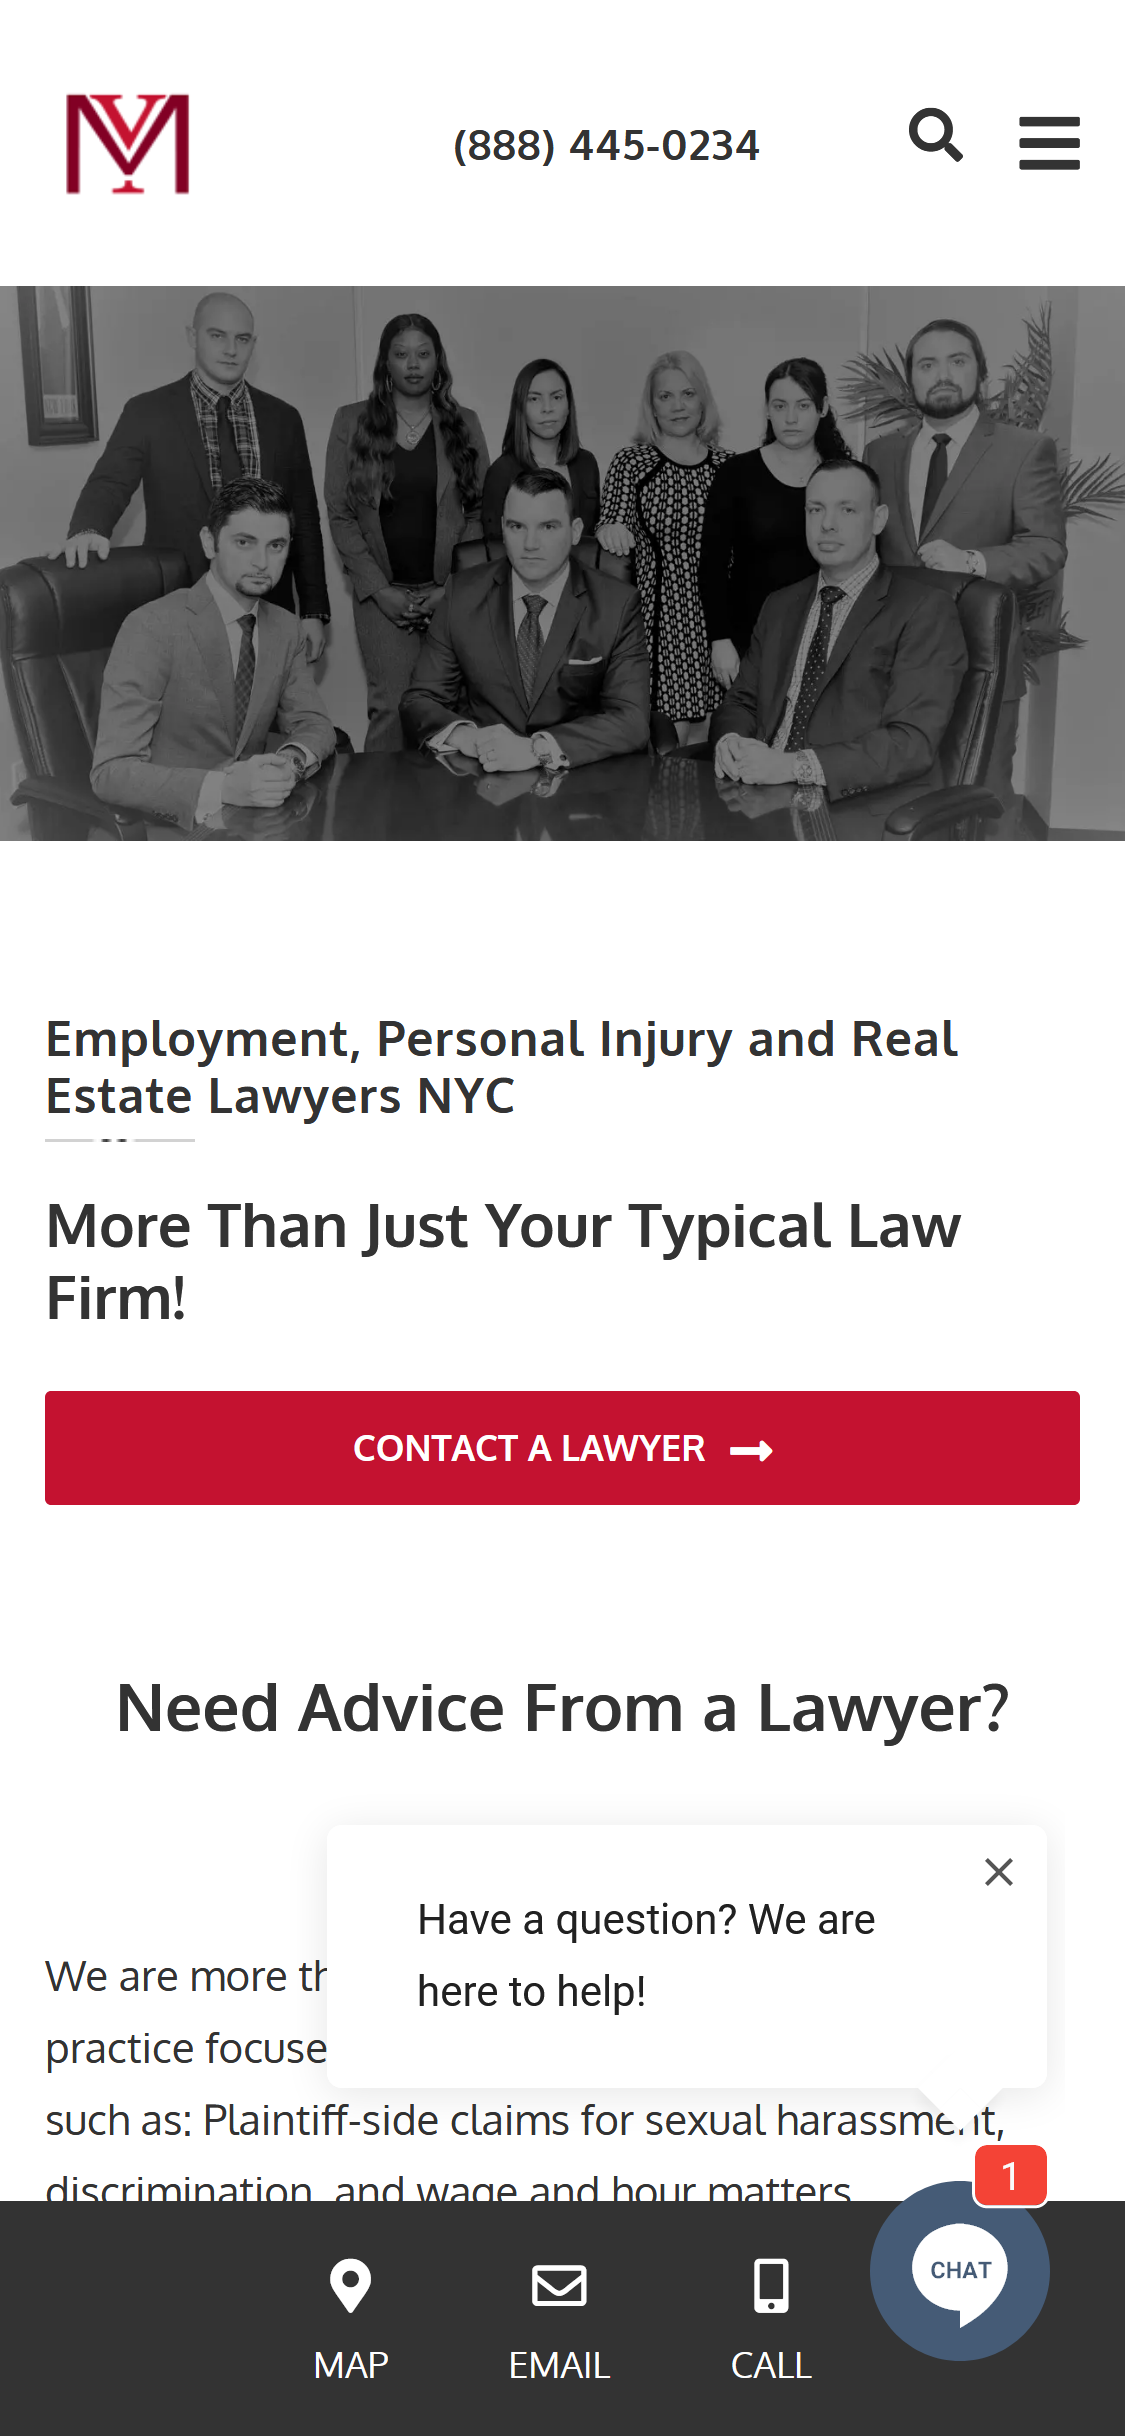 wp-content/uploads/2020/12/Screenshot_2020-12-06-New-York-Labor-and-Employment-Attorneys-Law-Office-of-Yuriy-Moshes.png